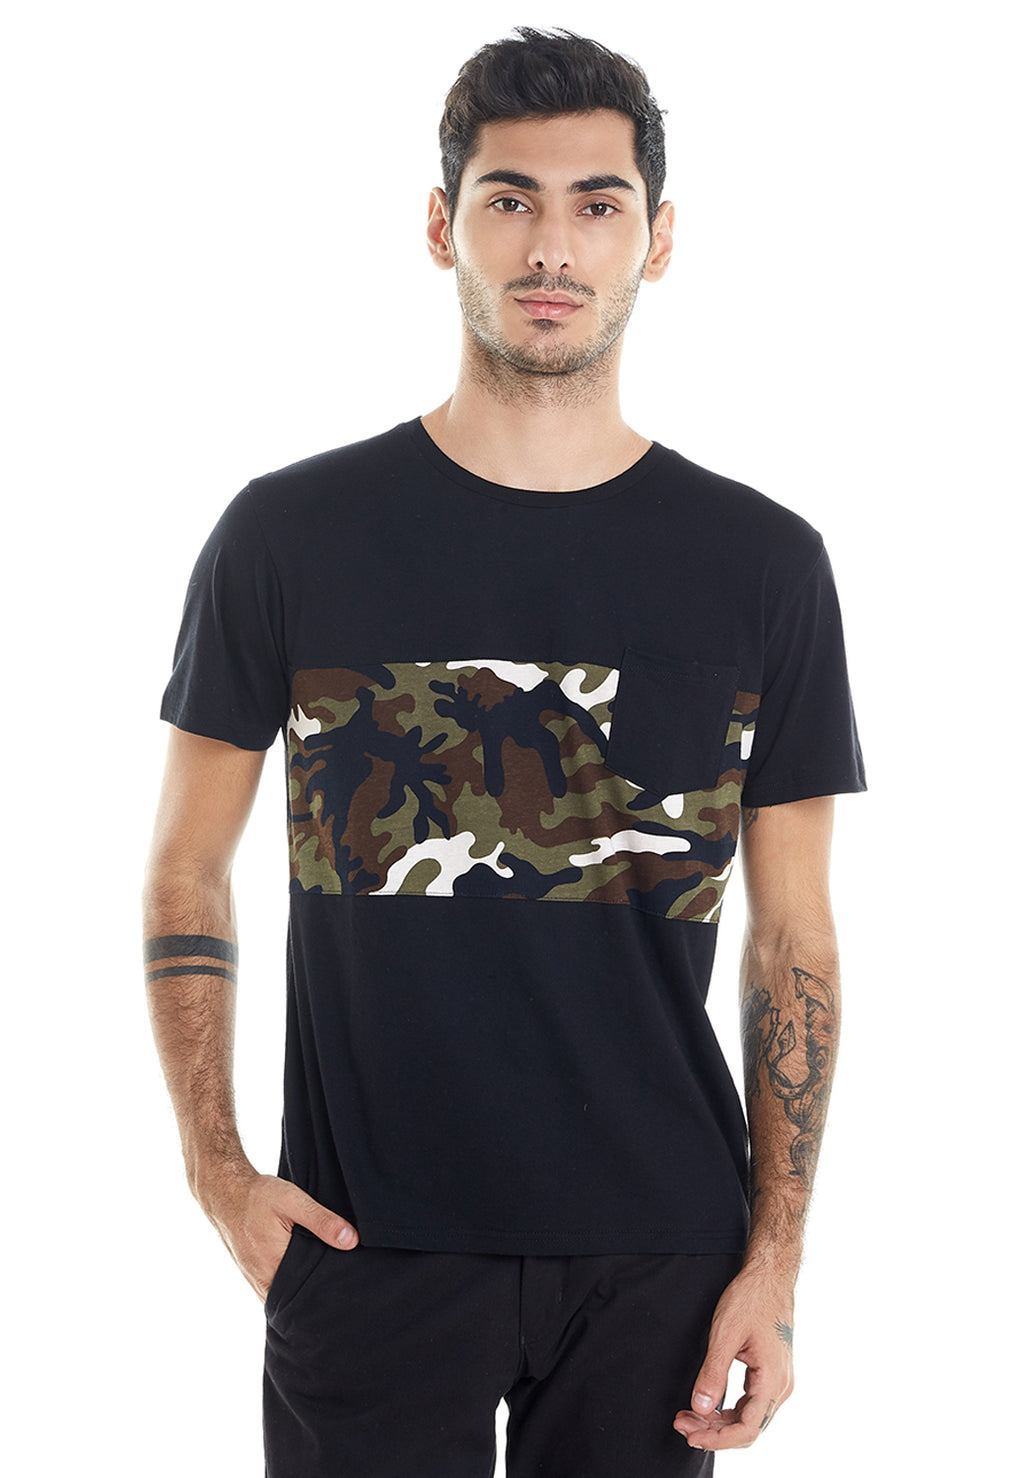 POCKET ARMY BLACK